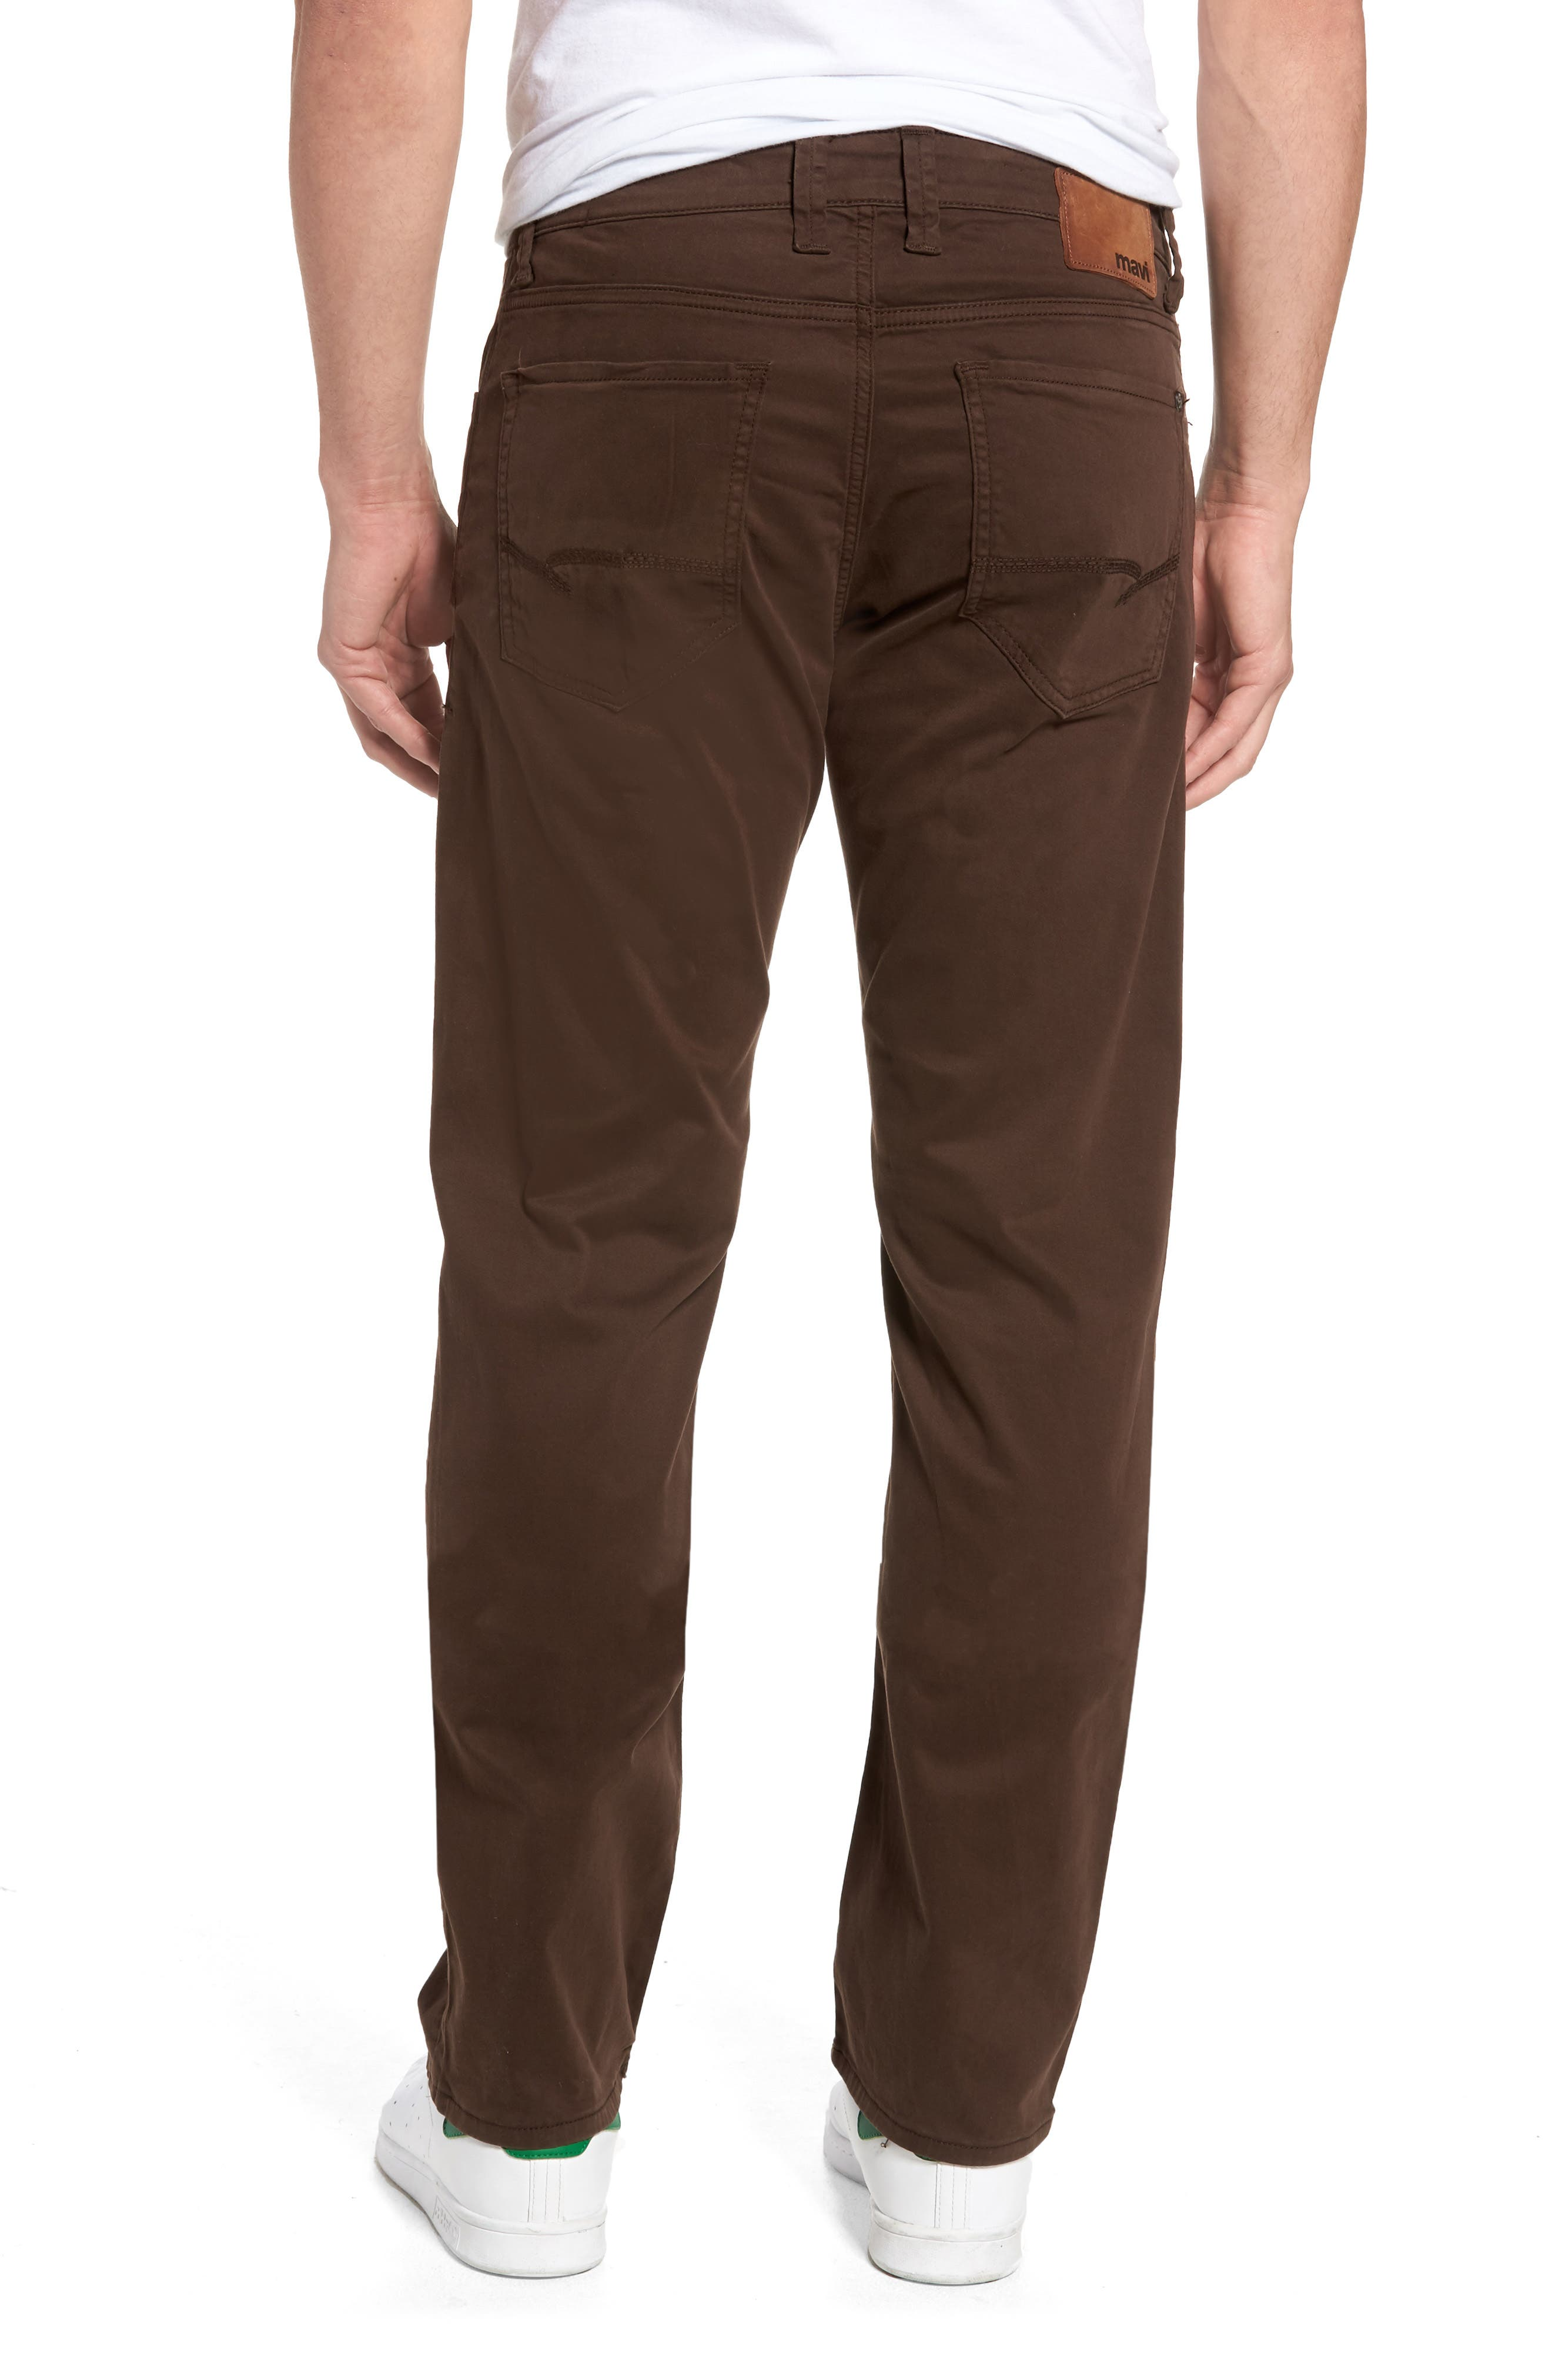 Zach Straight Fit Twill Pants,                             Alternate thumbnail 2, color,                             COFFEE BEAN TWILL